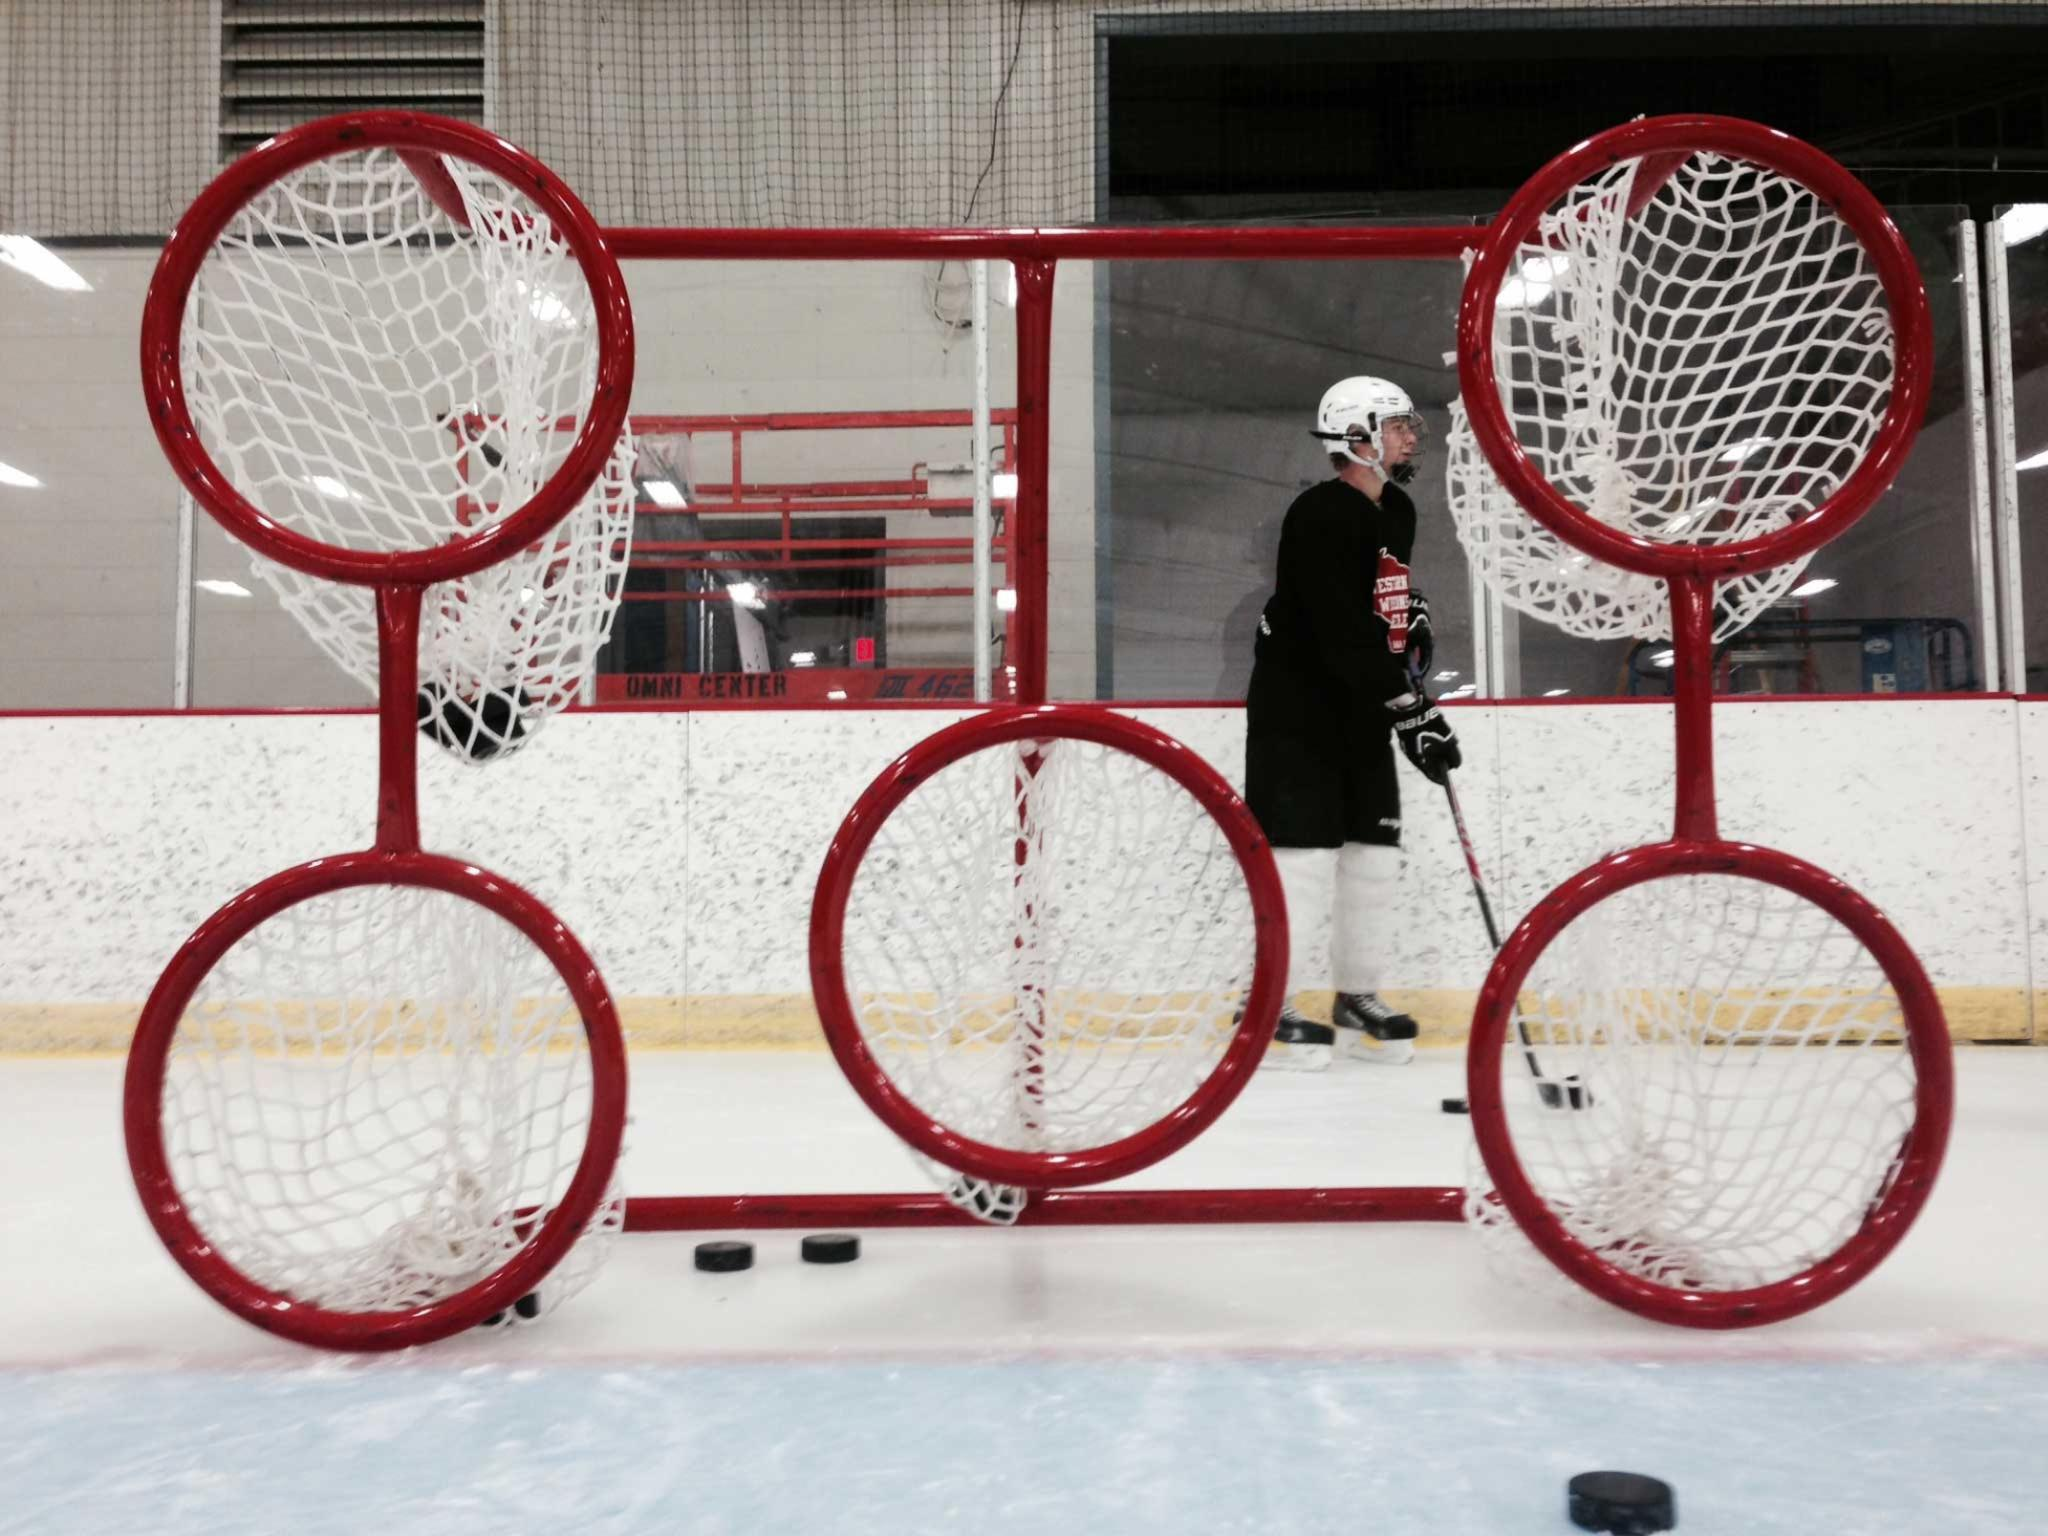 Steel Hockey Training Goals for Shooting Practice and Accuracy, Made in the USA, with Welded Lacing Bar for Net Attachment.